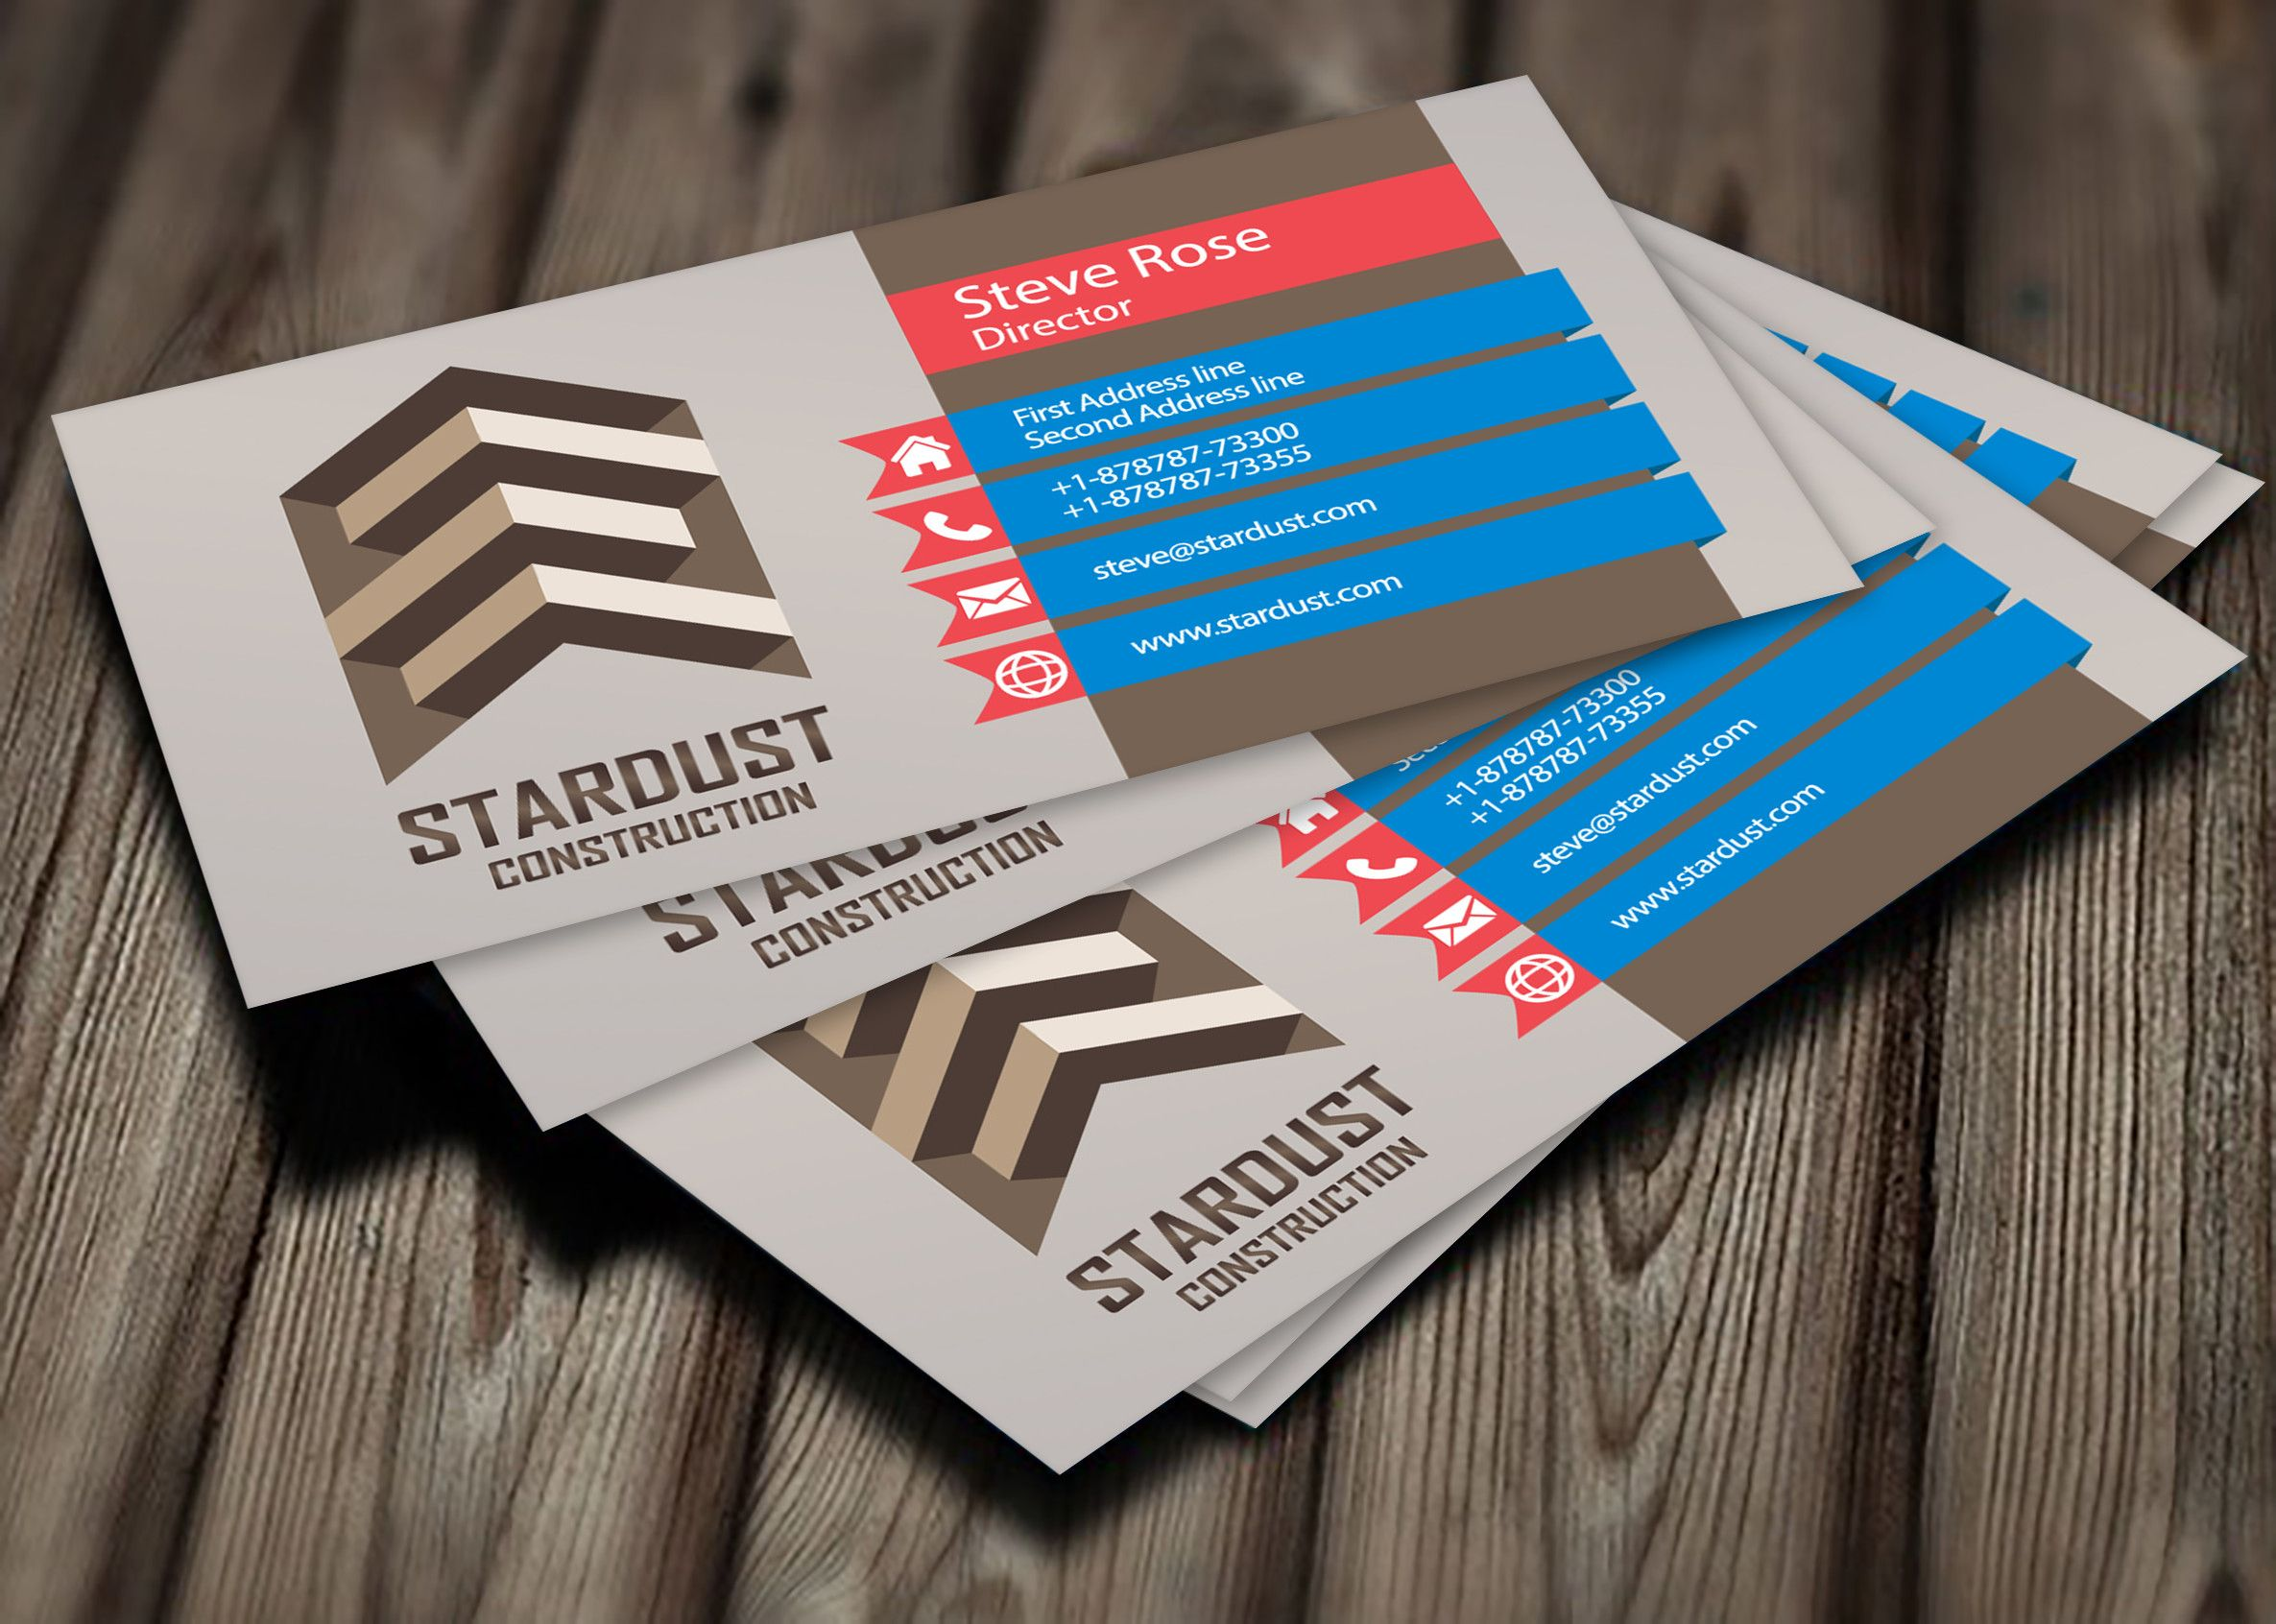 Create modern cut out business cards business cards elegant fiverr freelancer will provide business cards stationery services and design creative and professional business card including double sided within 5 days colourmoves Choice Image